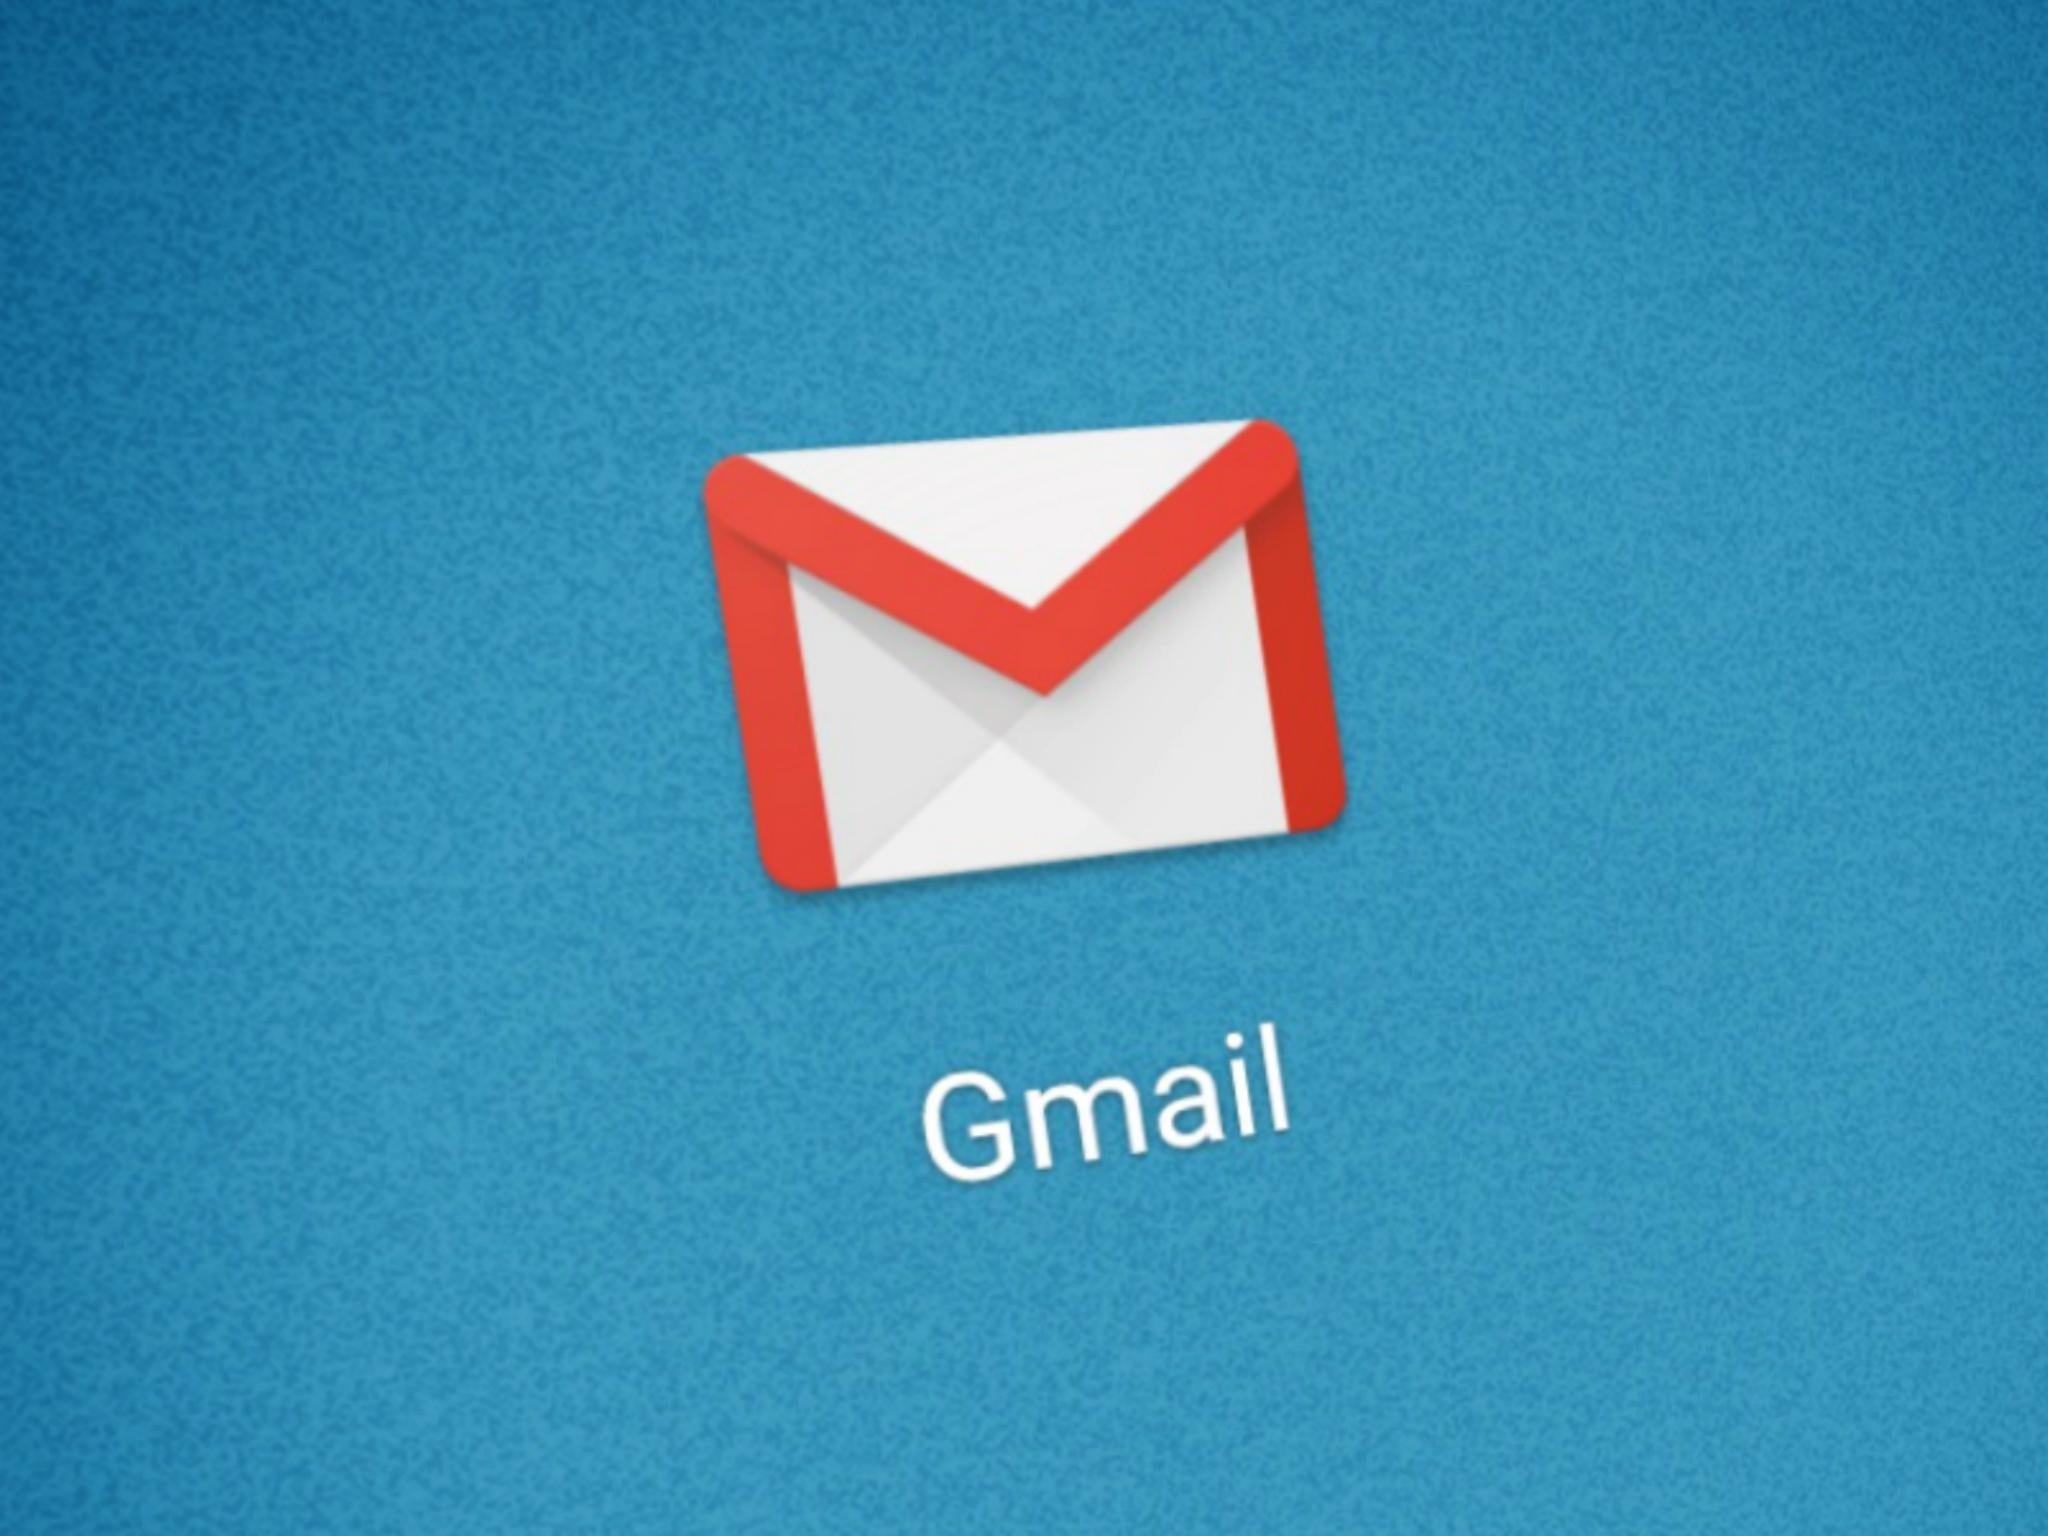 Google removes pronouns from Gmail 'smart compose' feature after they are accidentally sexist